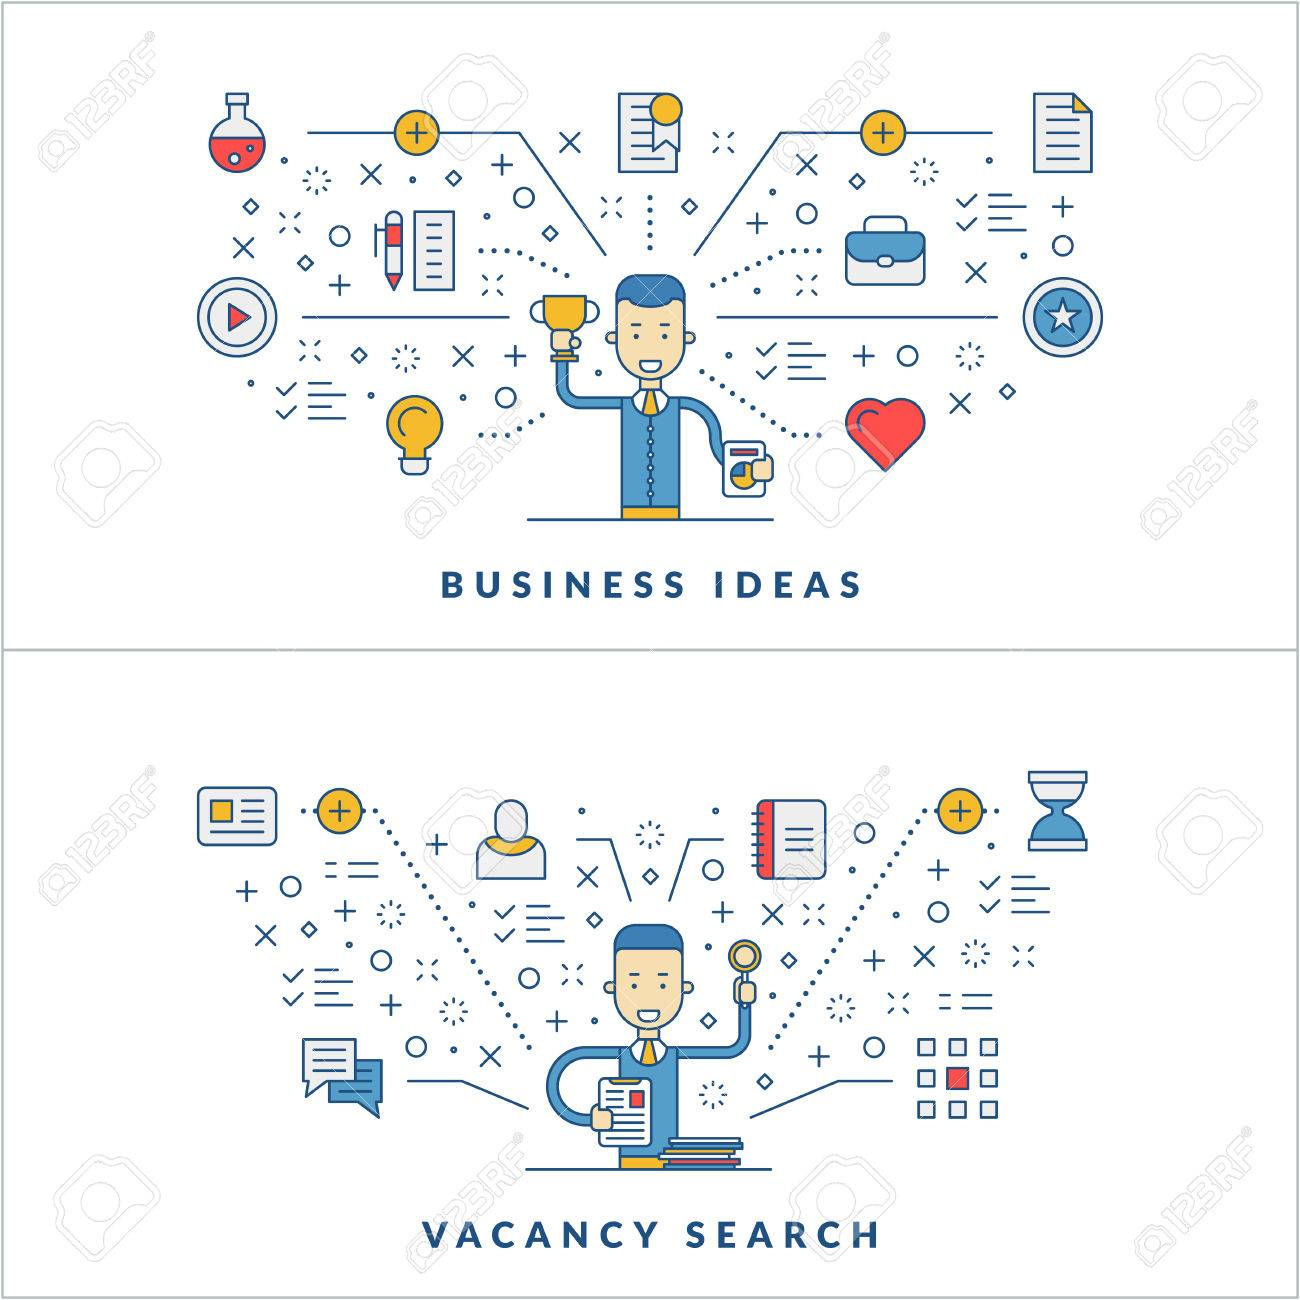 Business ideas  Vacancy search  Web design  Social media  Flat